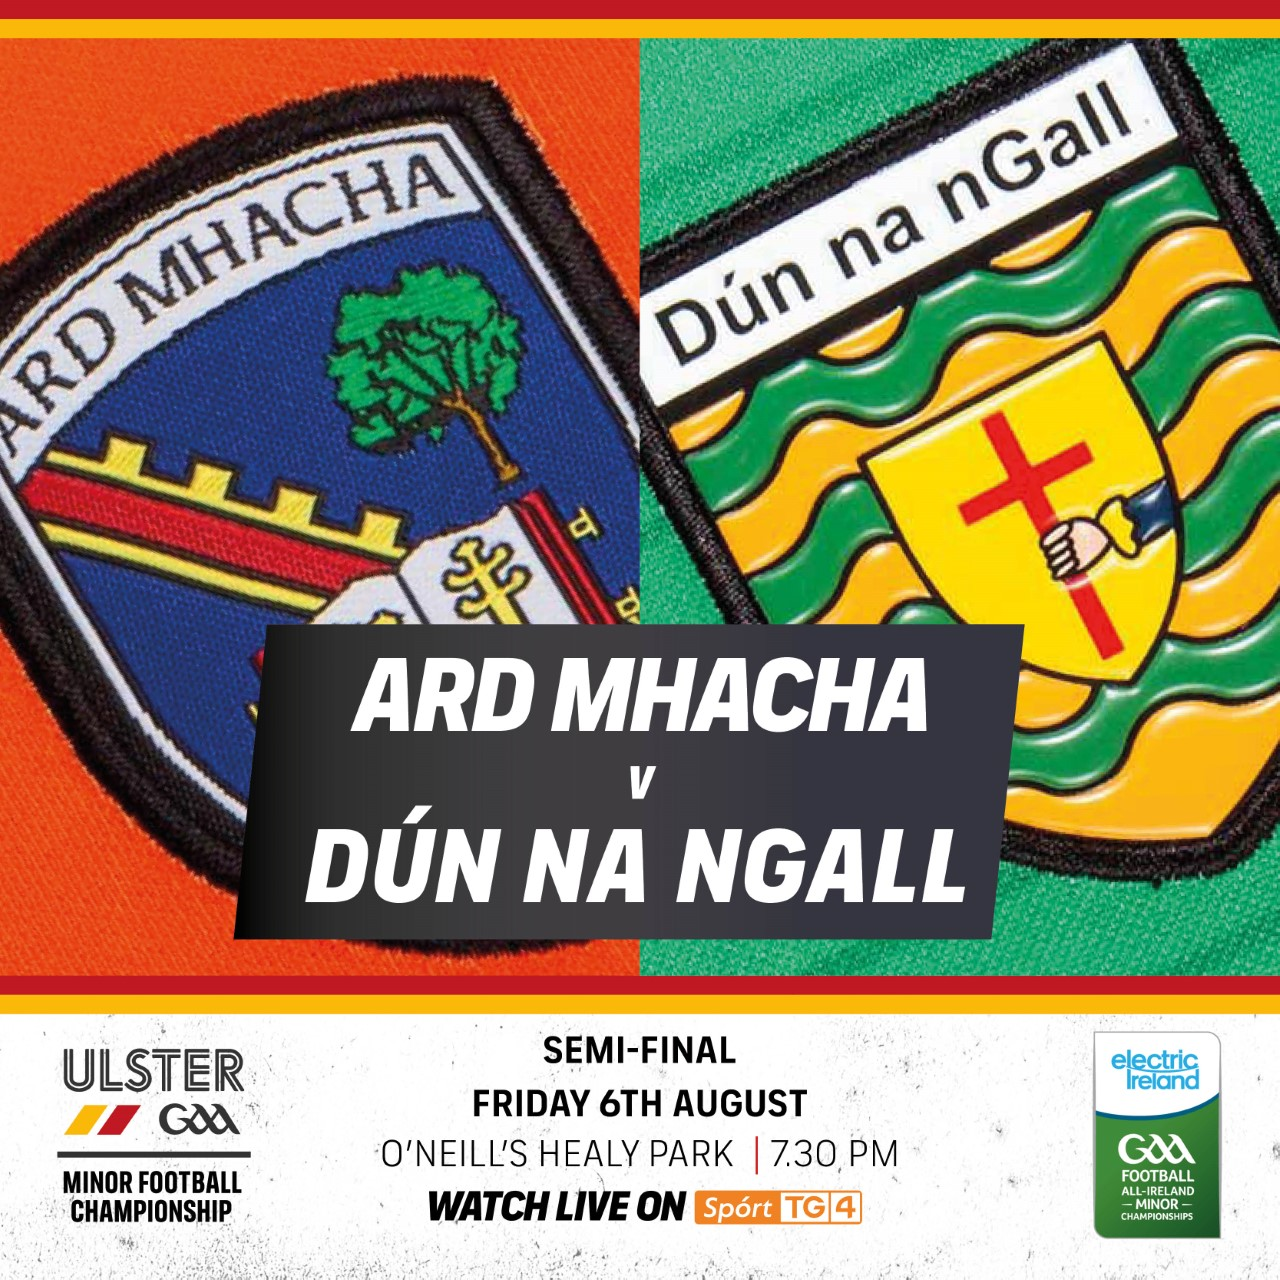 Electric Ireland Ulster Minor Football Championship Semi Final: Armagh v Donegal